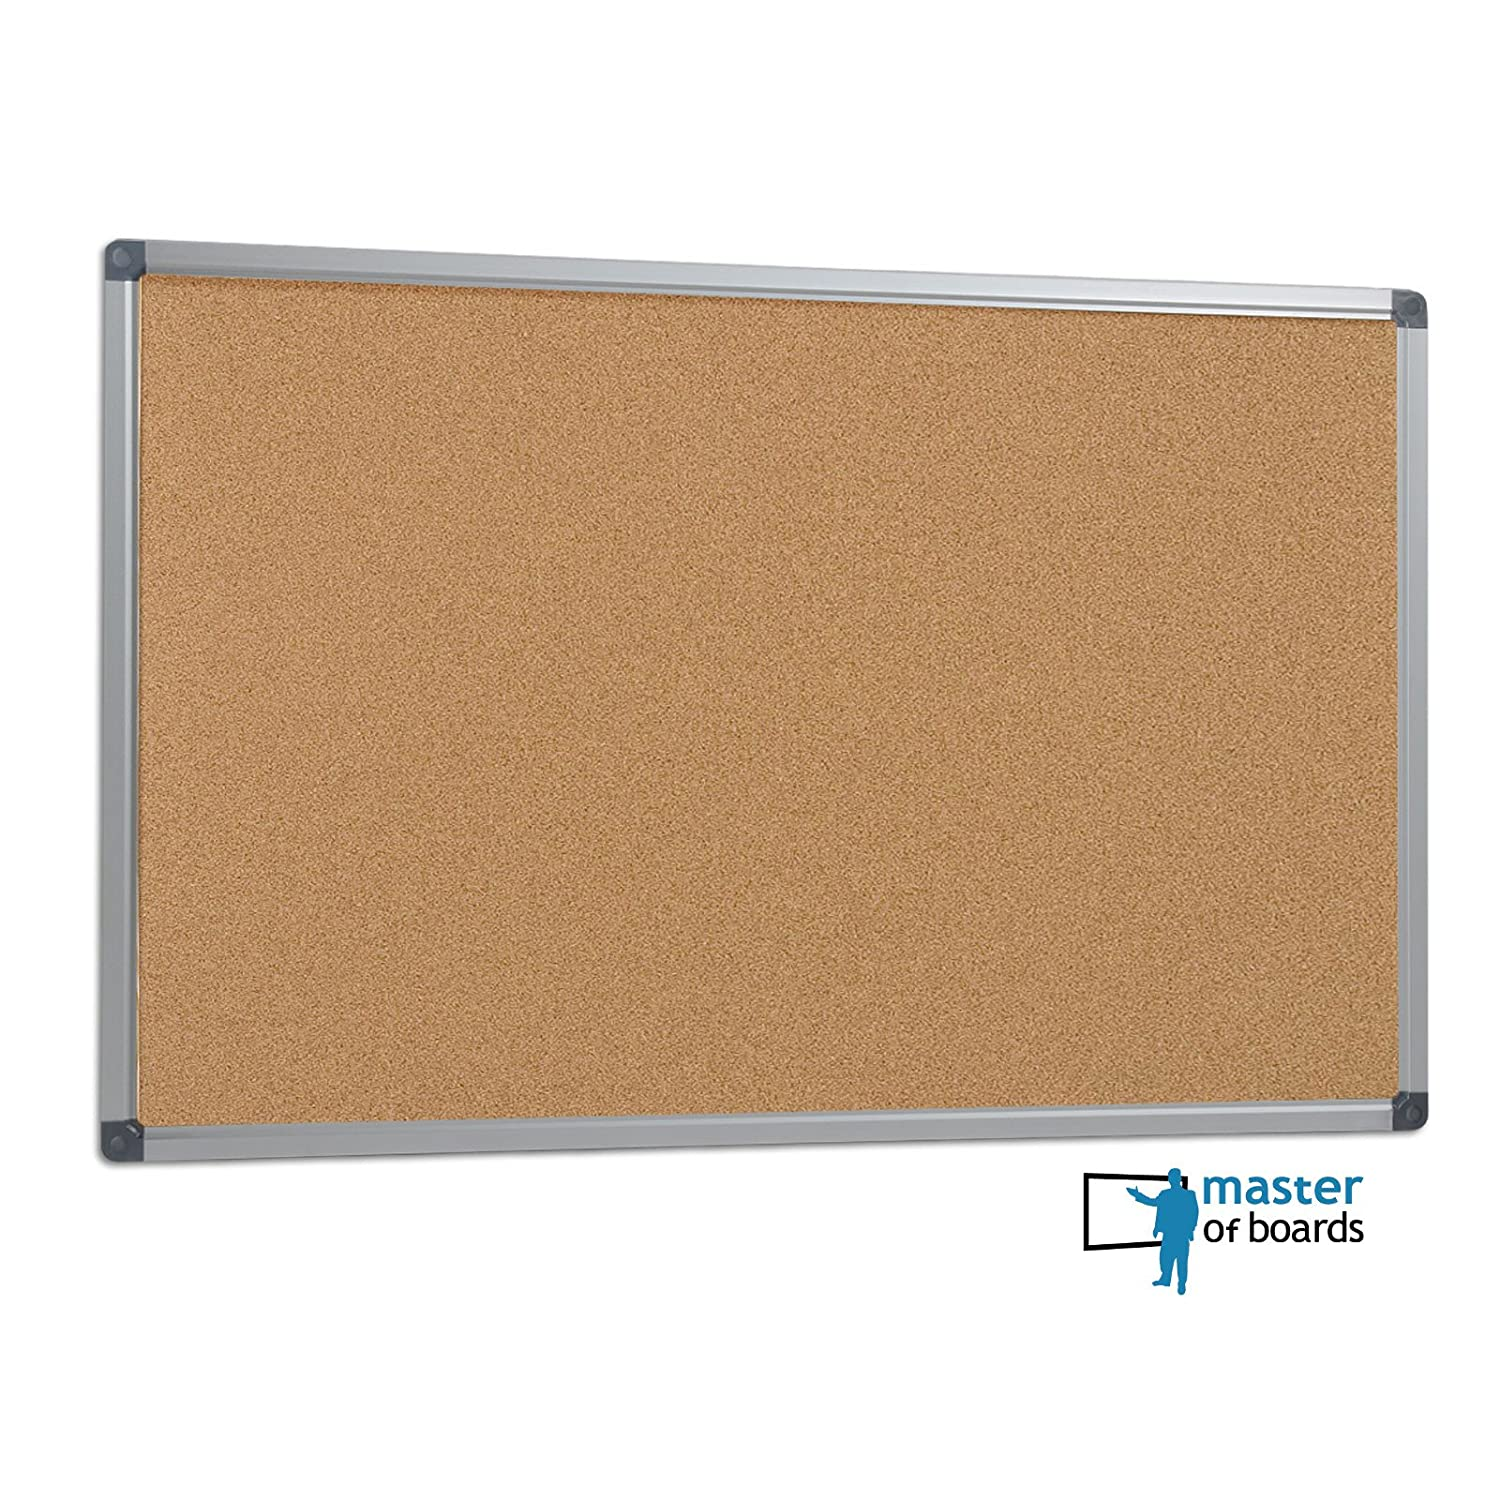 Master of Boards Office Cork Notice Board | Pin Board with Aluminium Frame  - 90x60cm (3'x2')